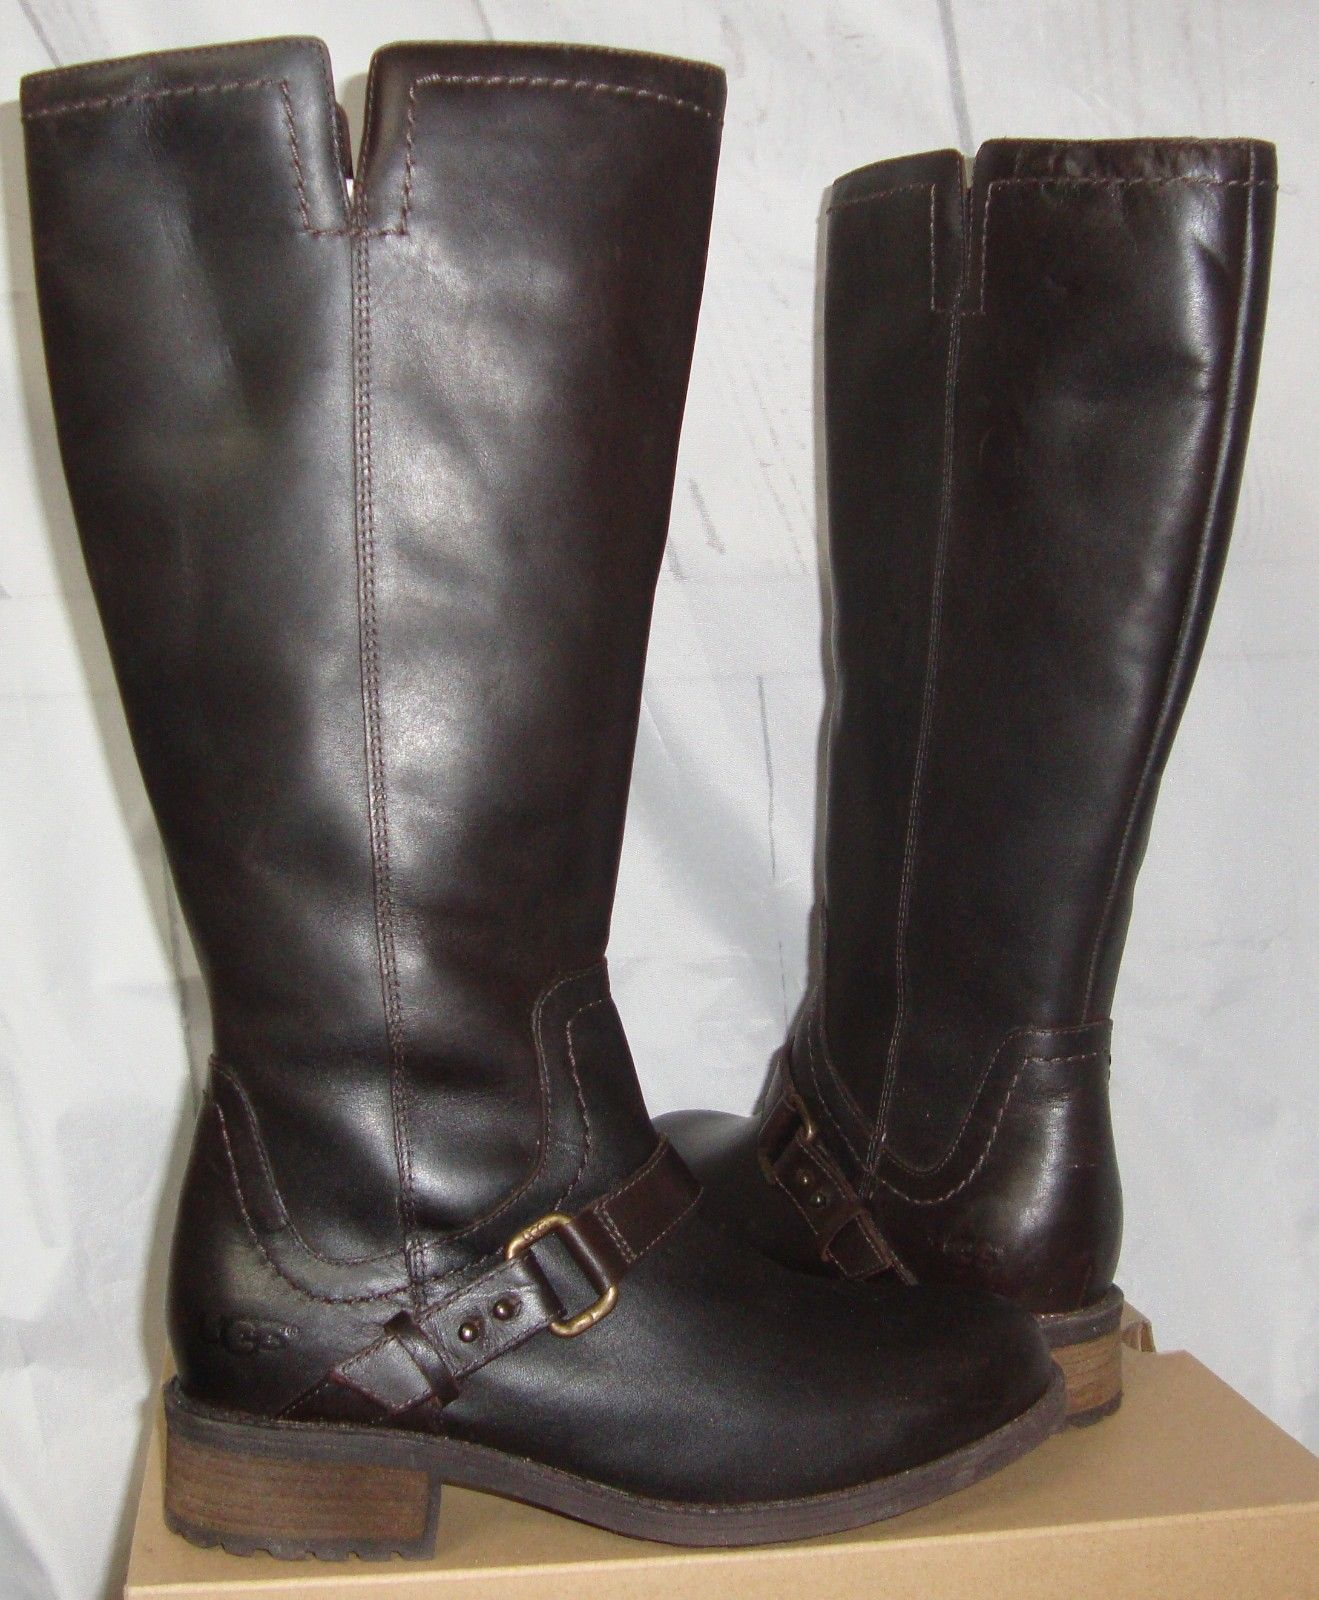 Primary image for UGG Australia DAHLEN Stout Tall Leather Fully Lined Boots Size 7.5 NEW 1006043